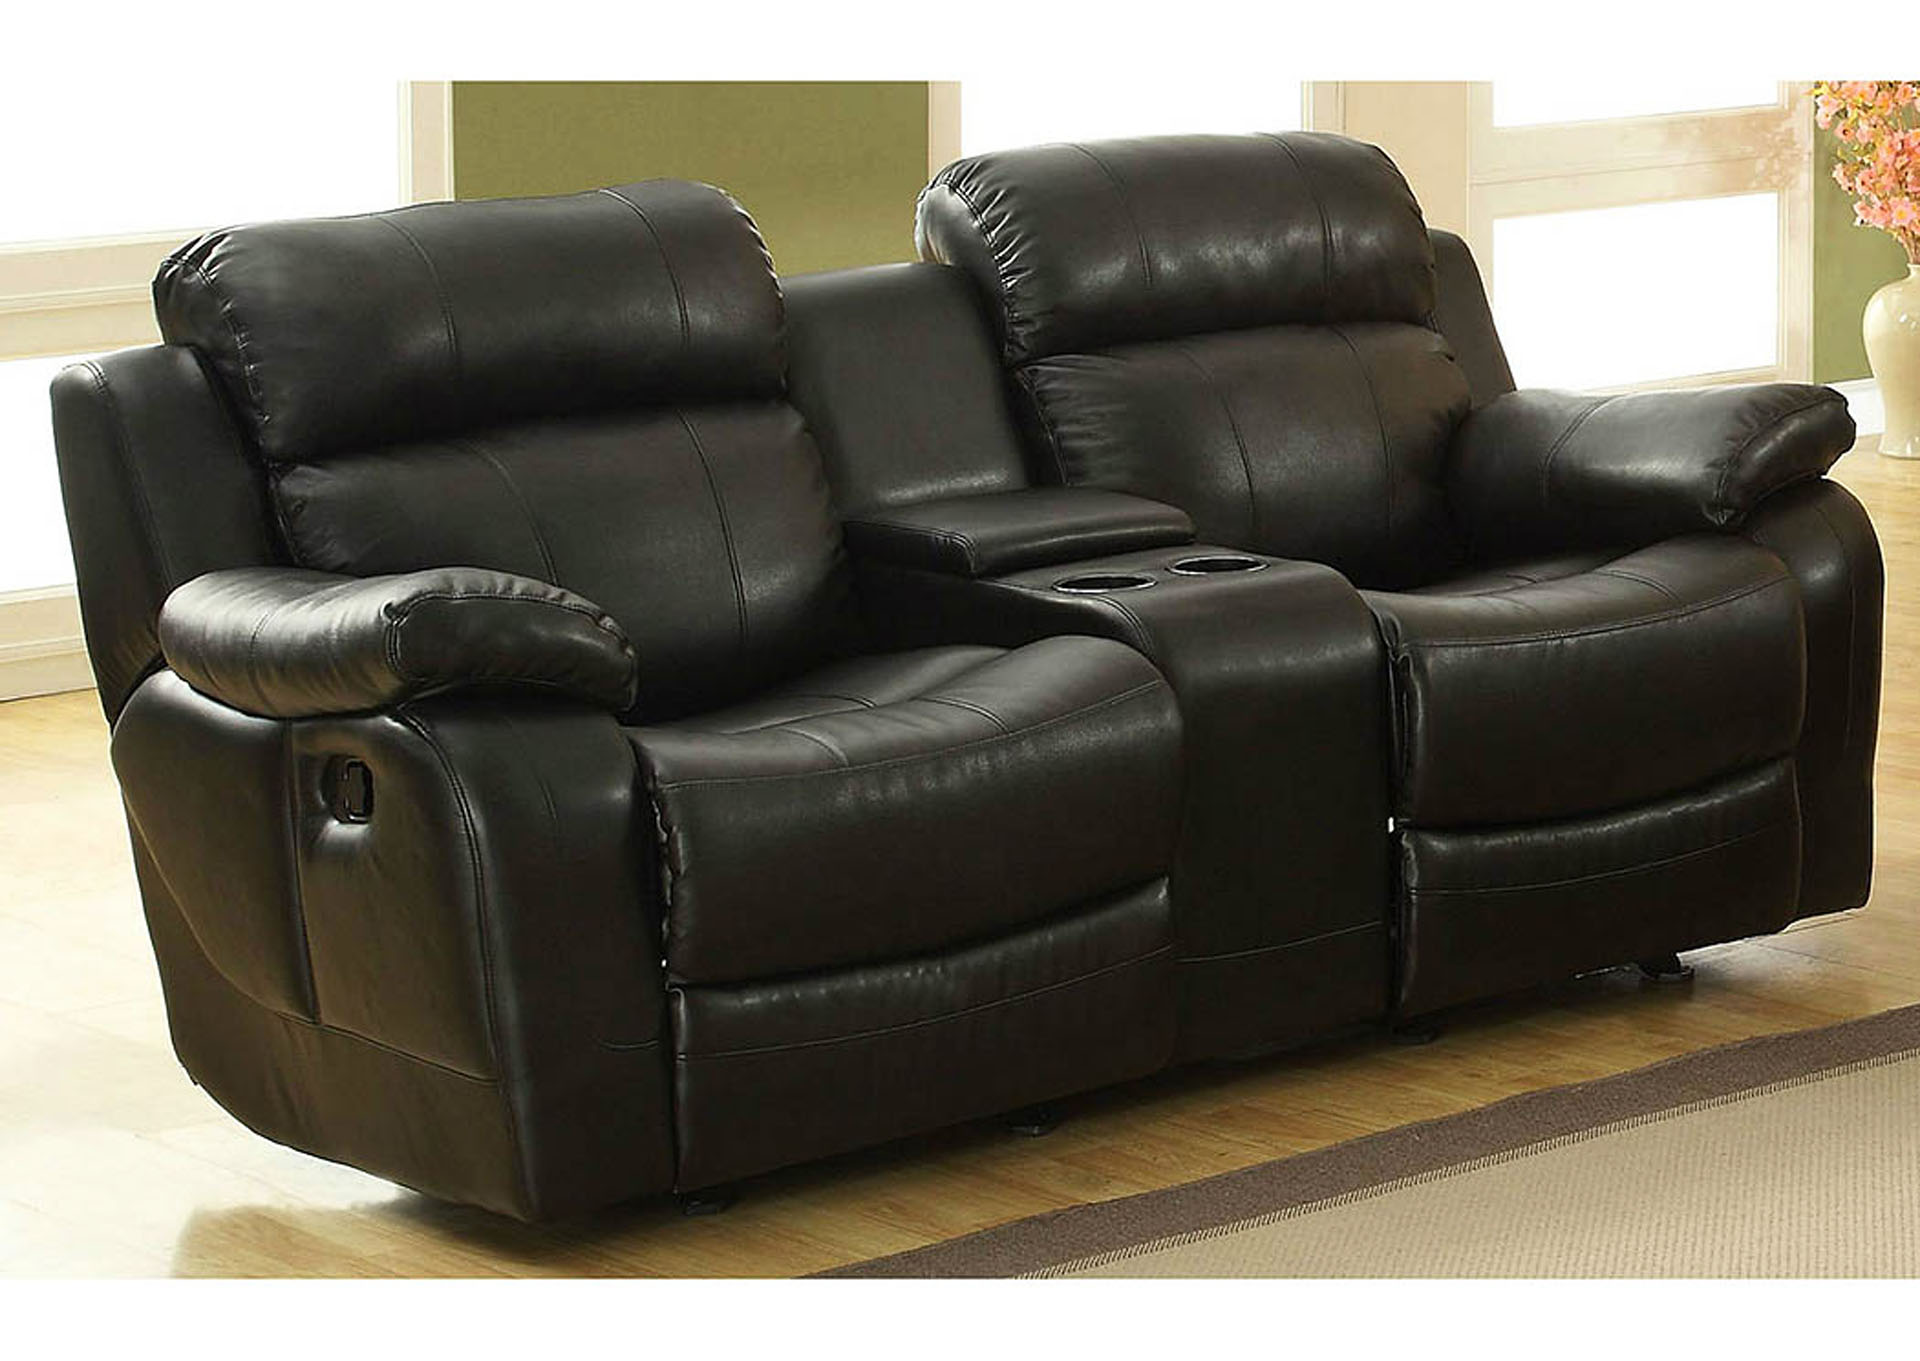 dfw furniture warehouse